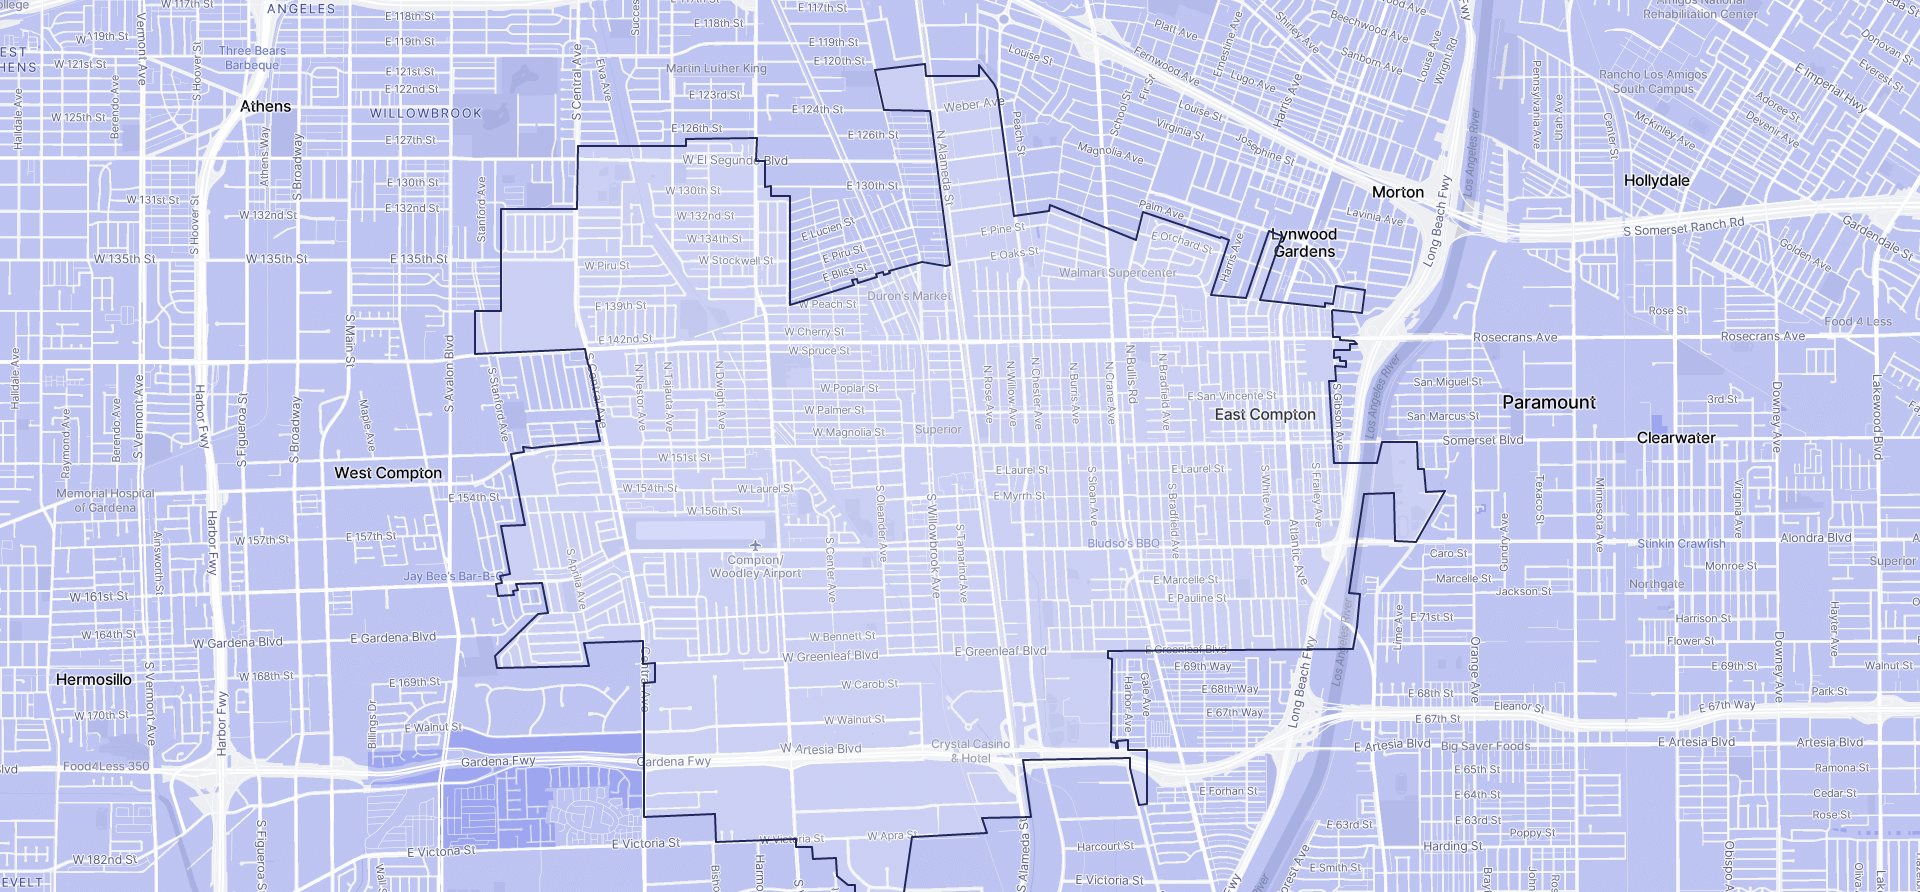 Image of Compton boundaries on a map.